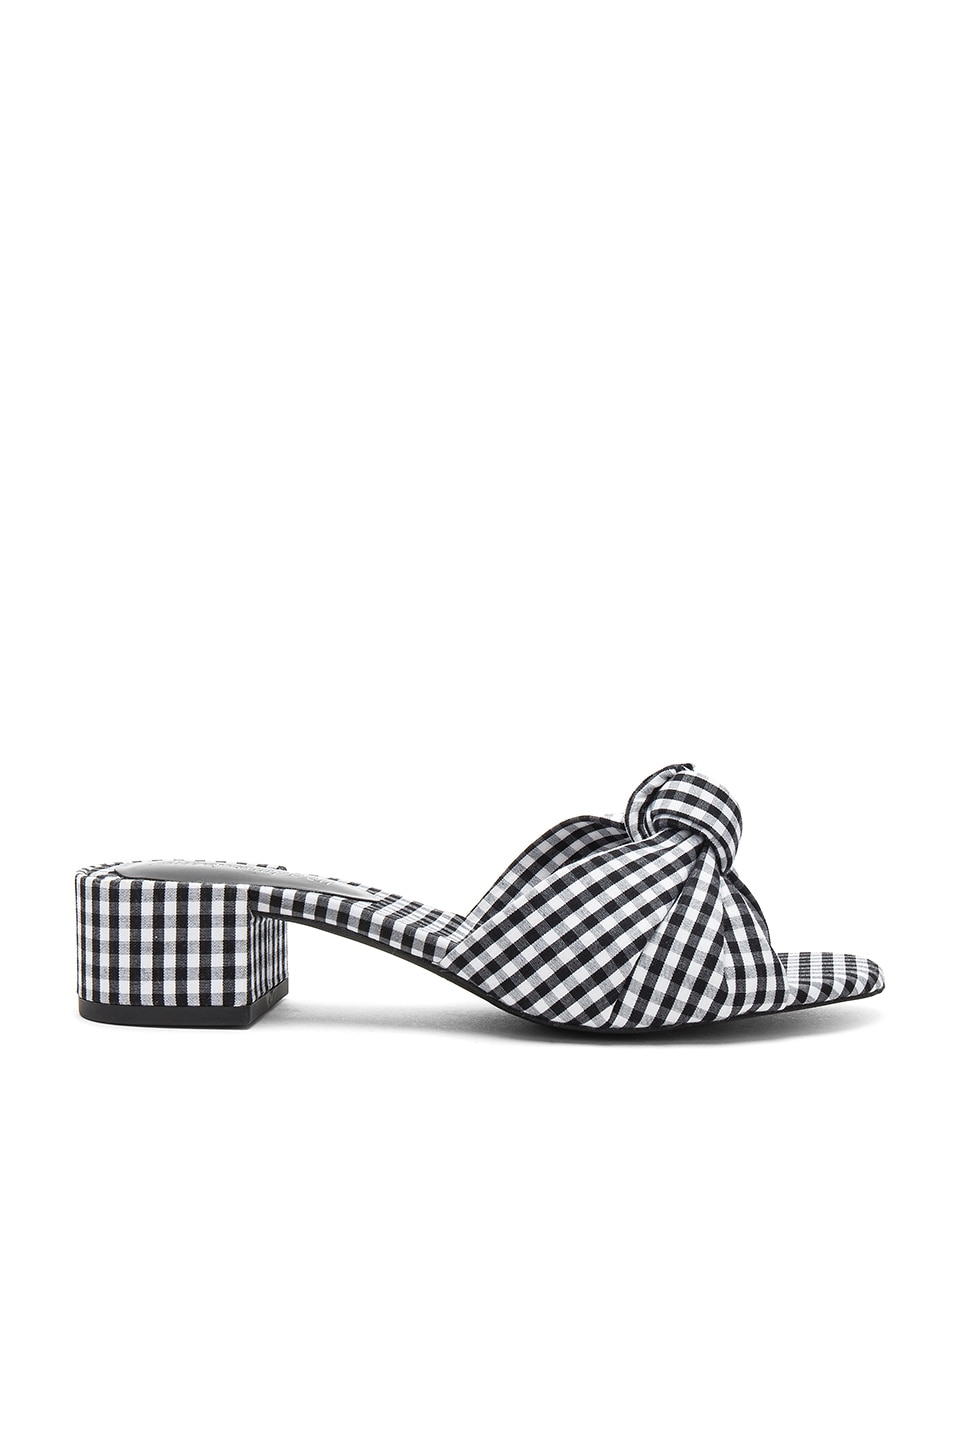 Jeffrey Campbell Beaton Mule in Black & White Gingham